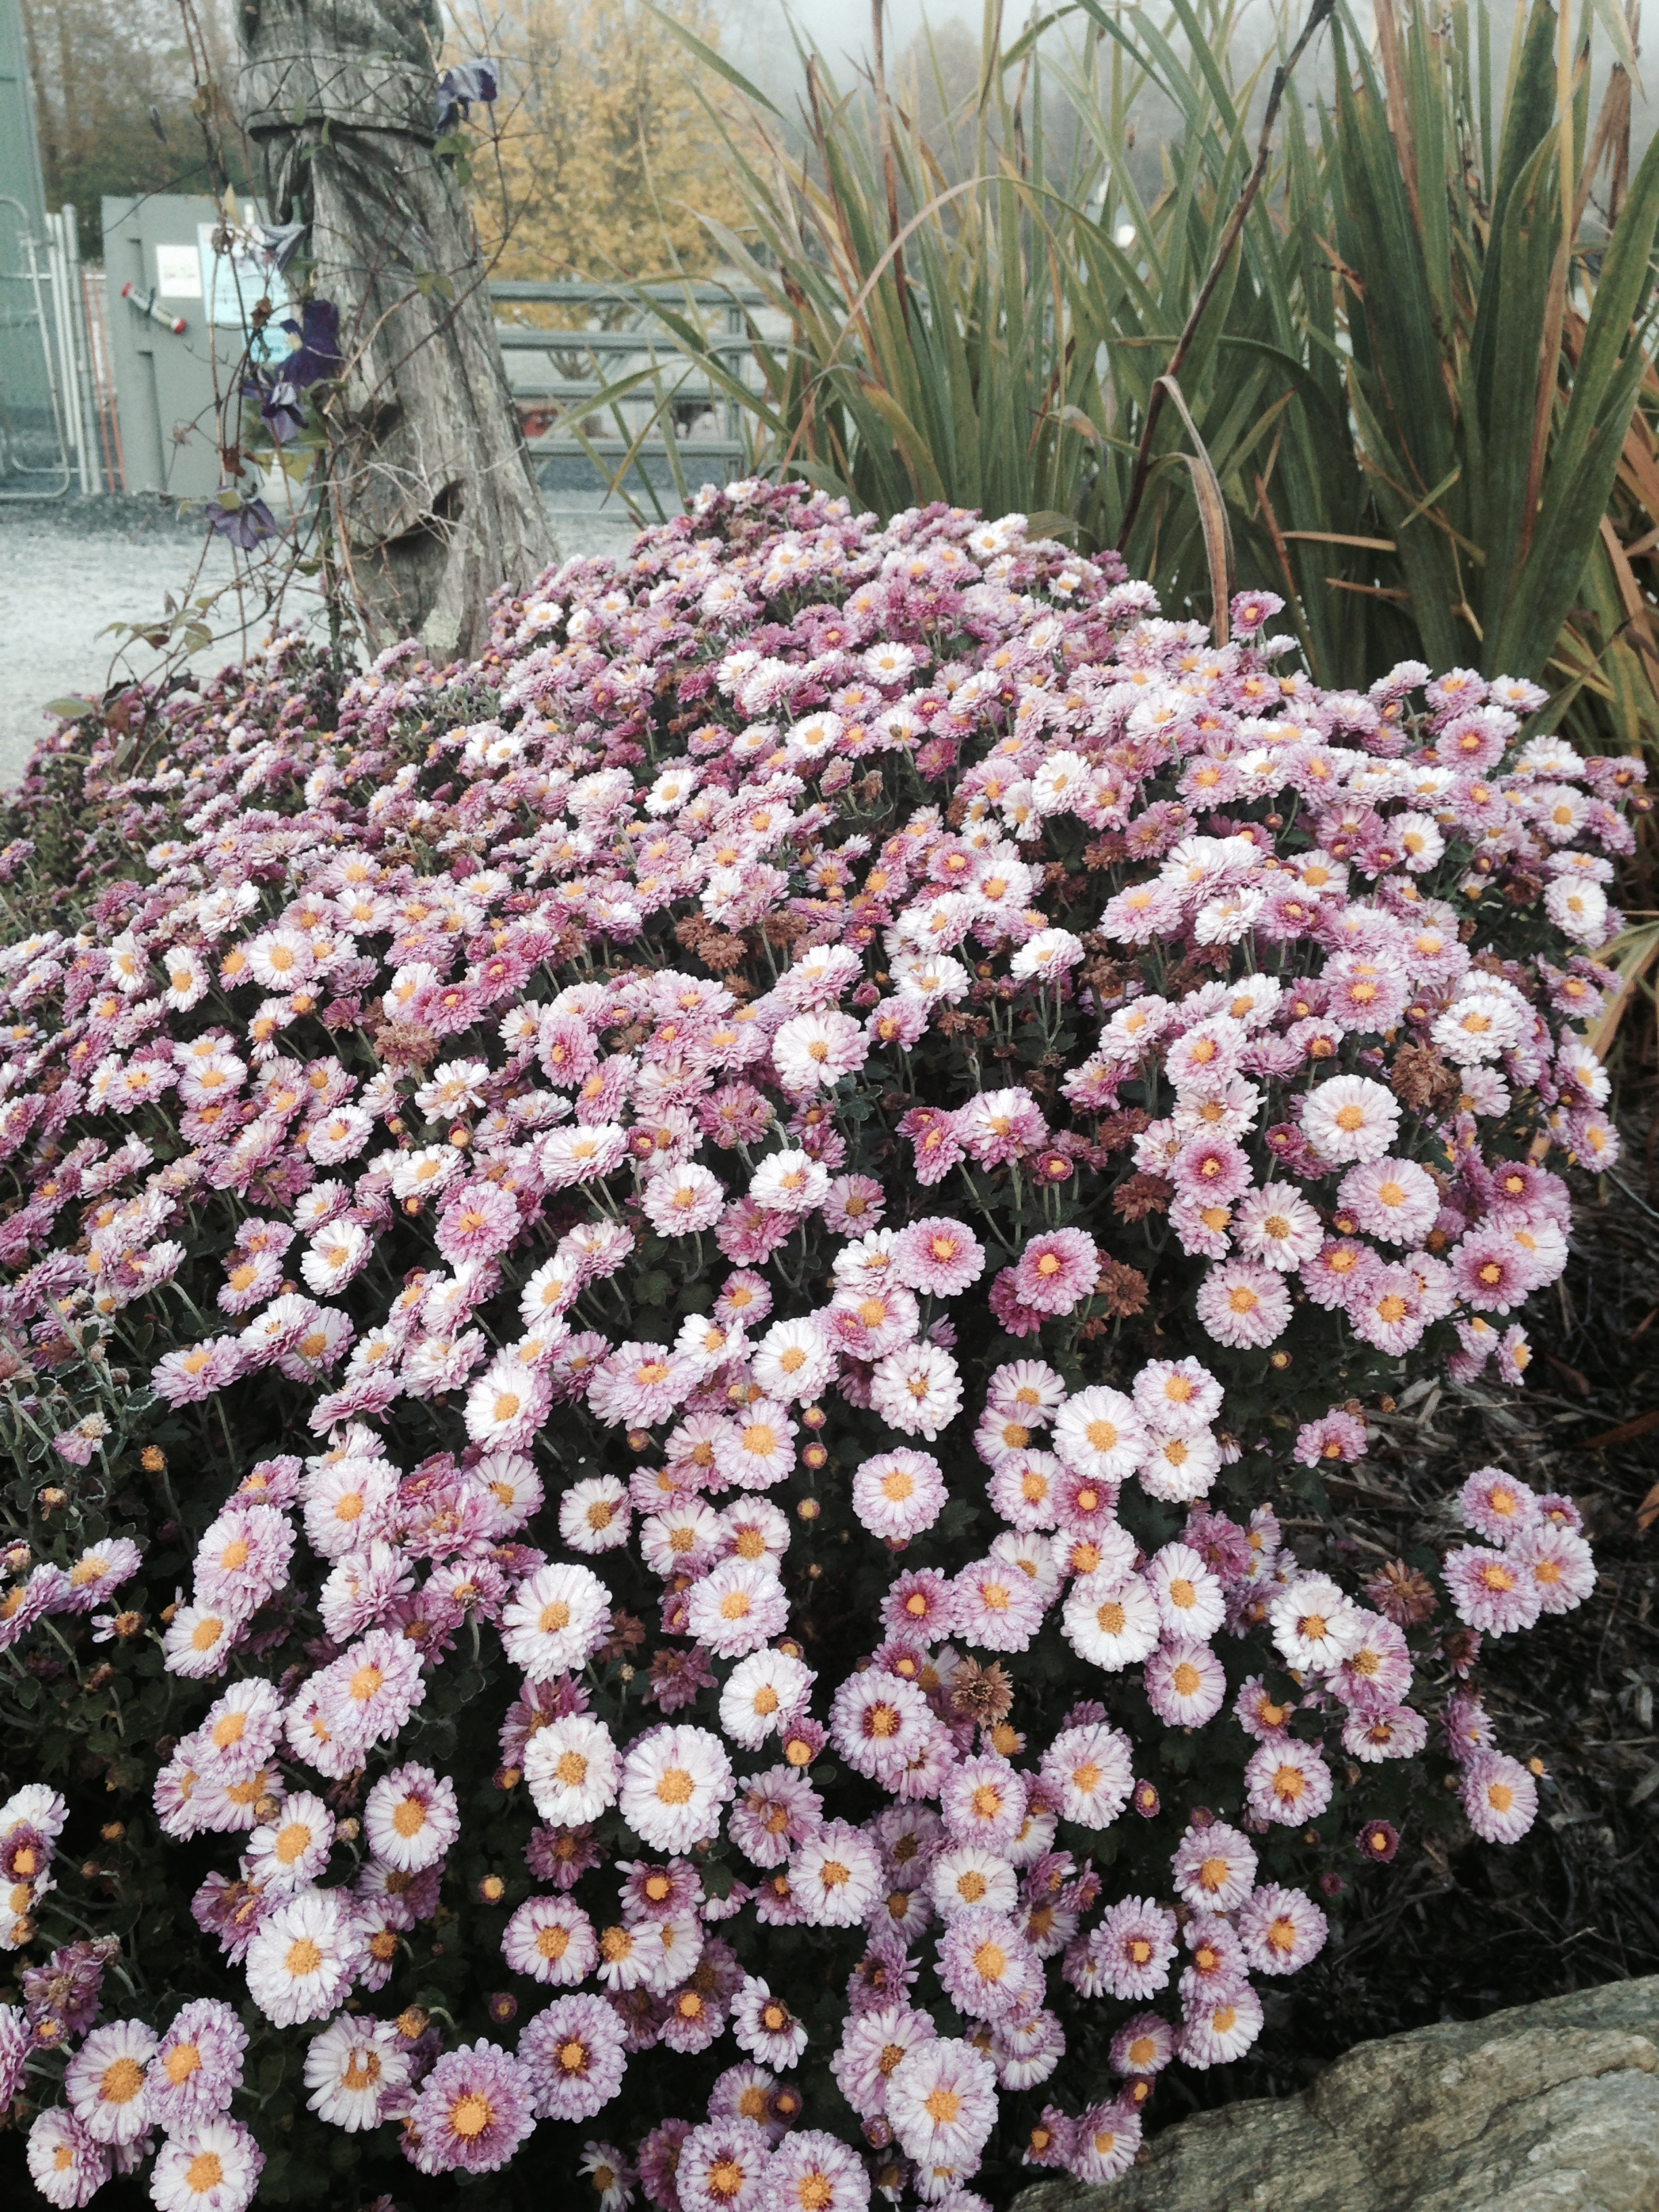 Seasonal mums (the ones that don't overwinter) are fun, but the hardy mums are great too.